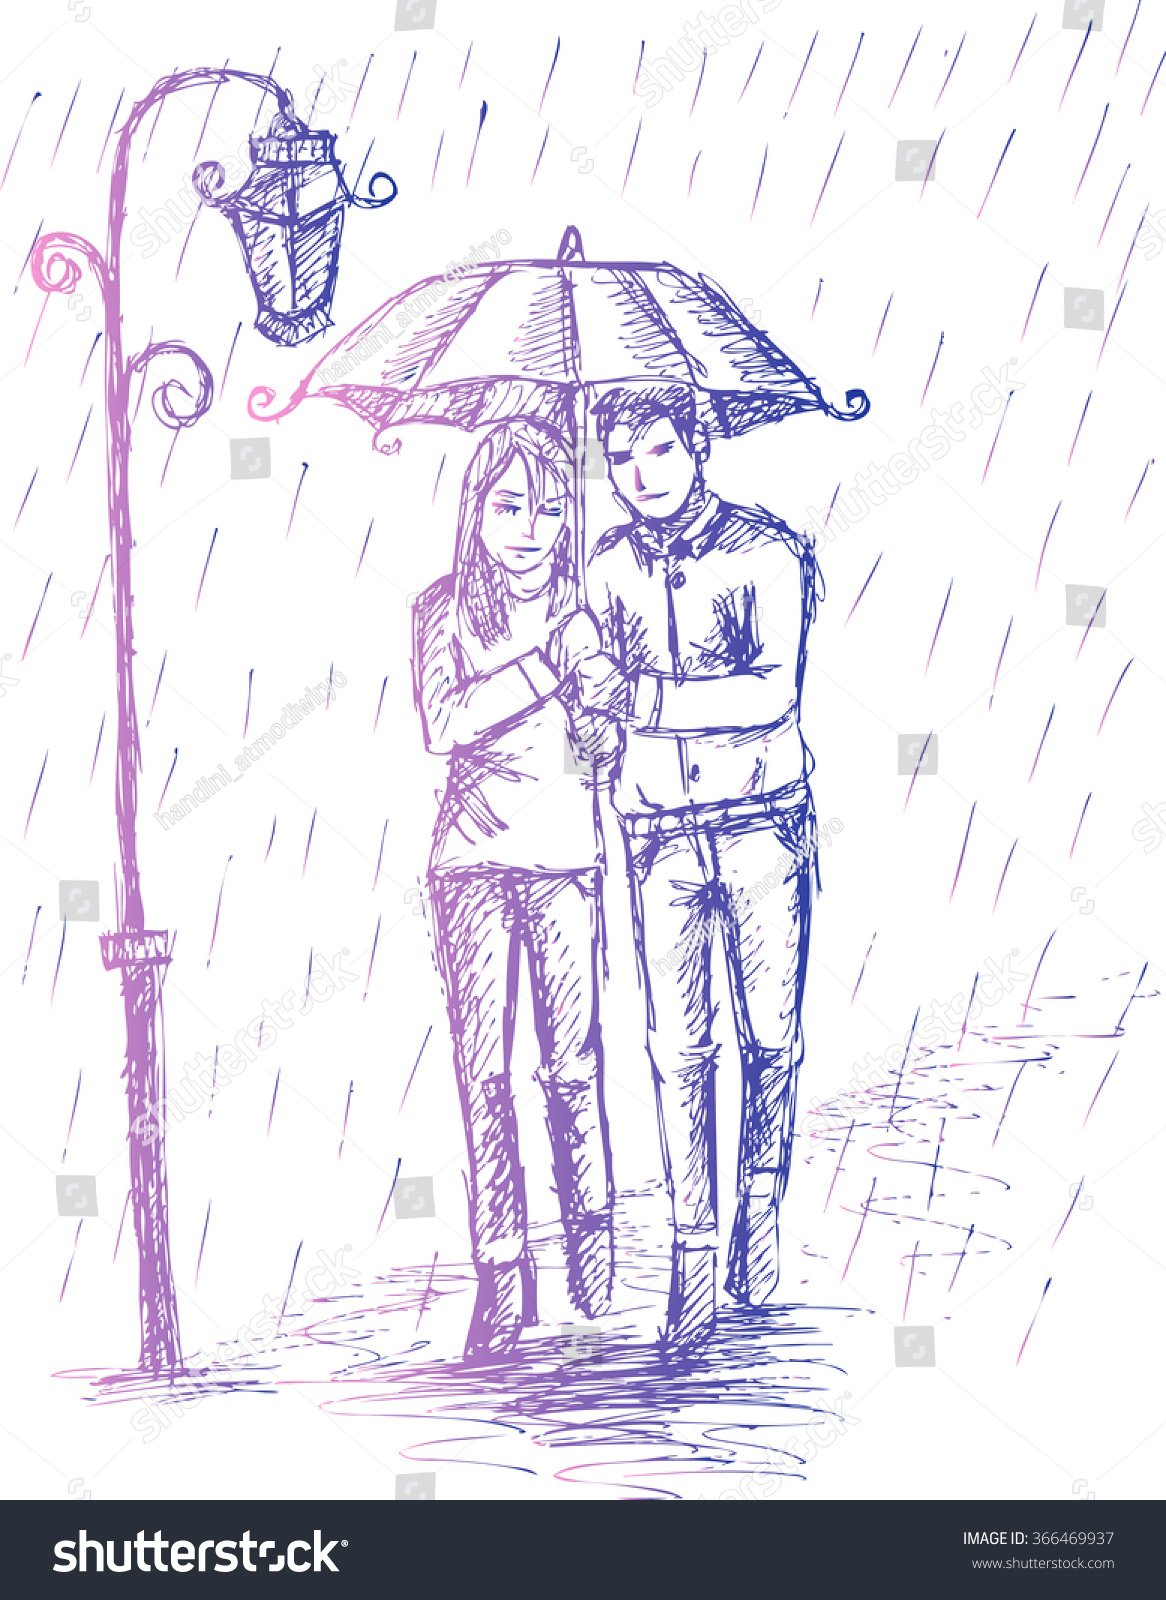 Couple under an umbrella in the rain hand drawing illustration